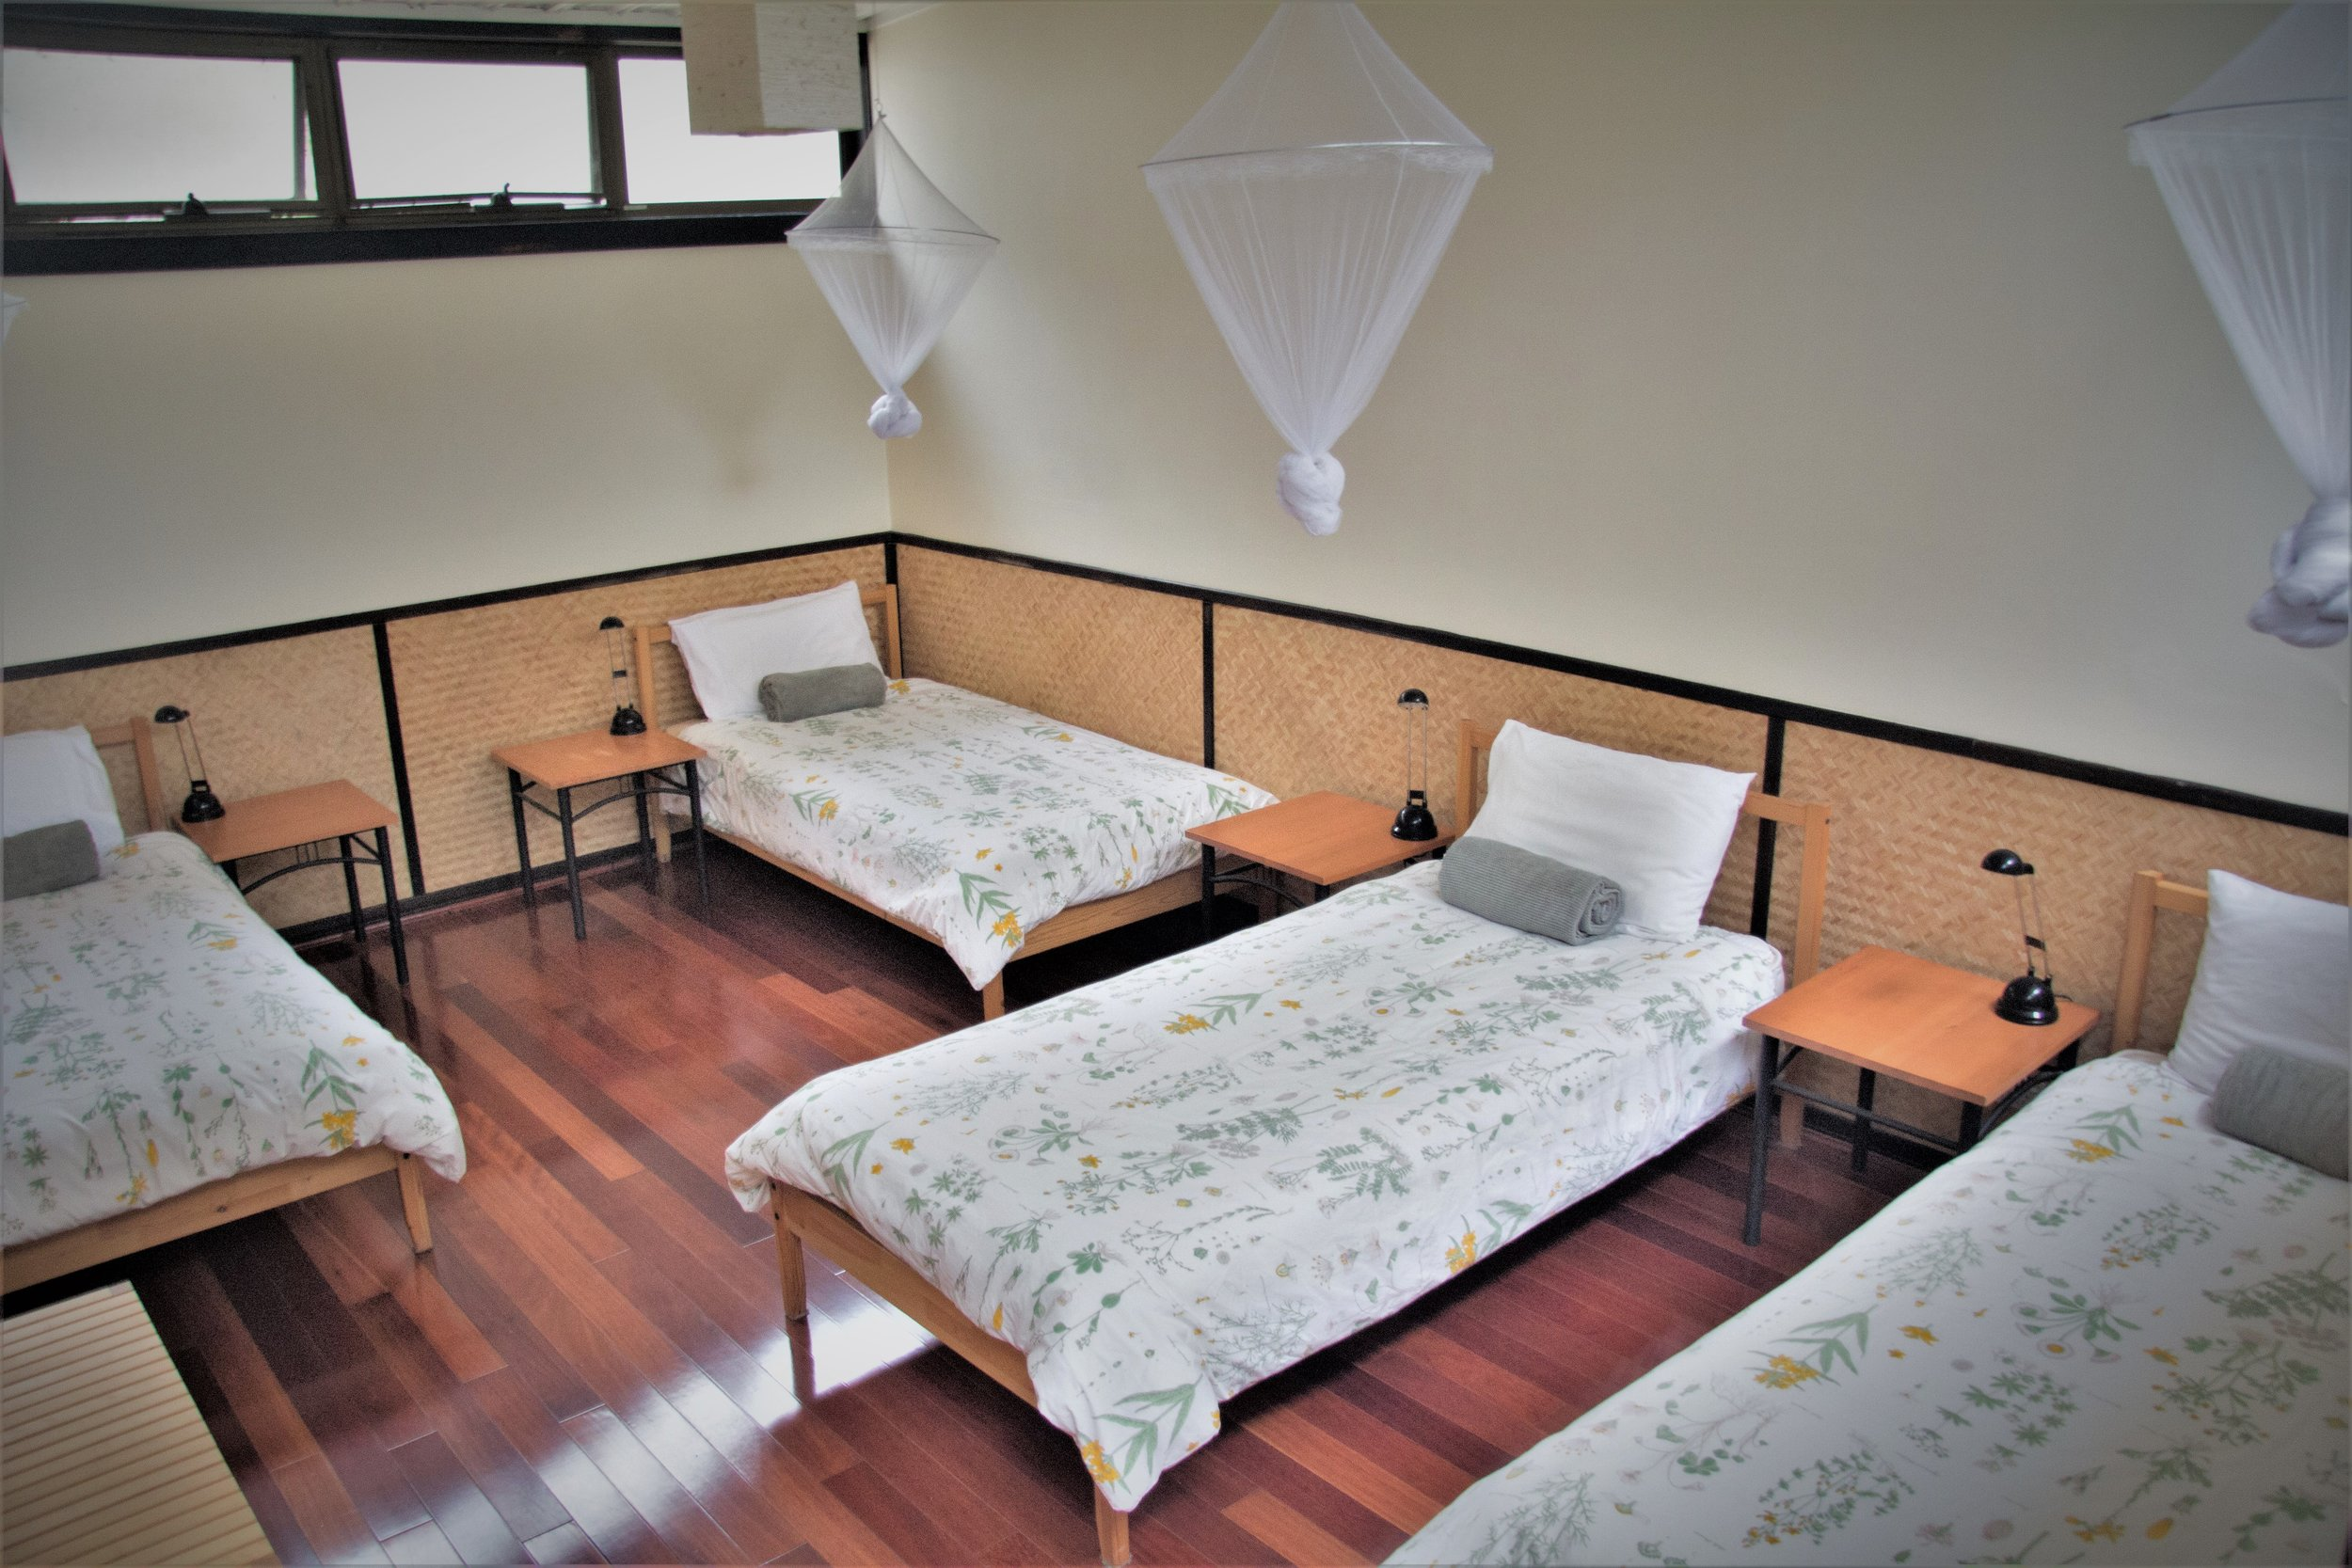 PACKAGE 3 - QUADRUPLE ROOM W/SHARED FACILITIES Features: 4 x Single Beds, communal bathrooms, polished wooden floors, fans + heater, free high speed WiFi, free parking. Access to all yoga classes + 3 vegan meals daily + workshops.